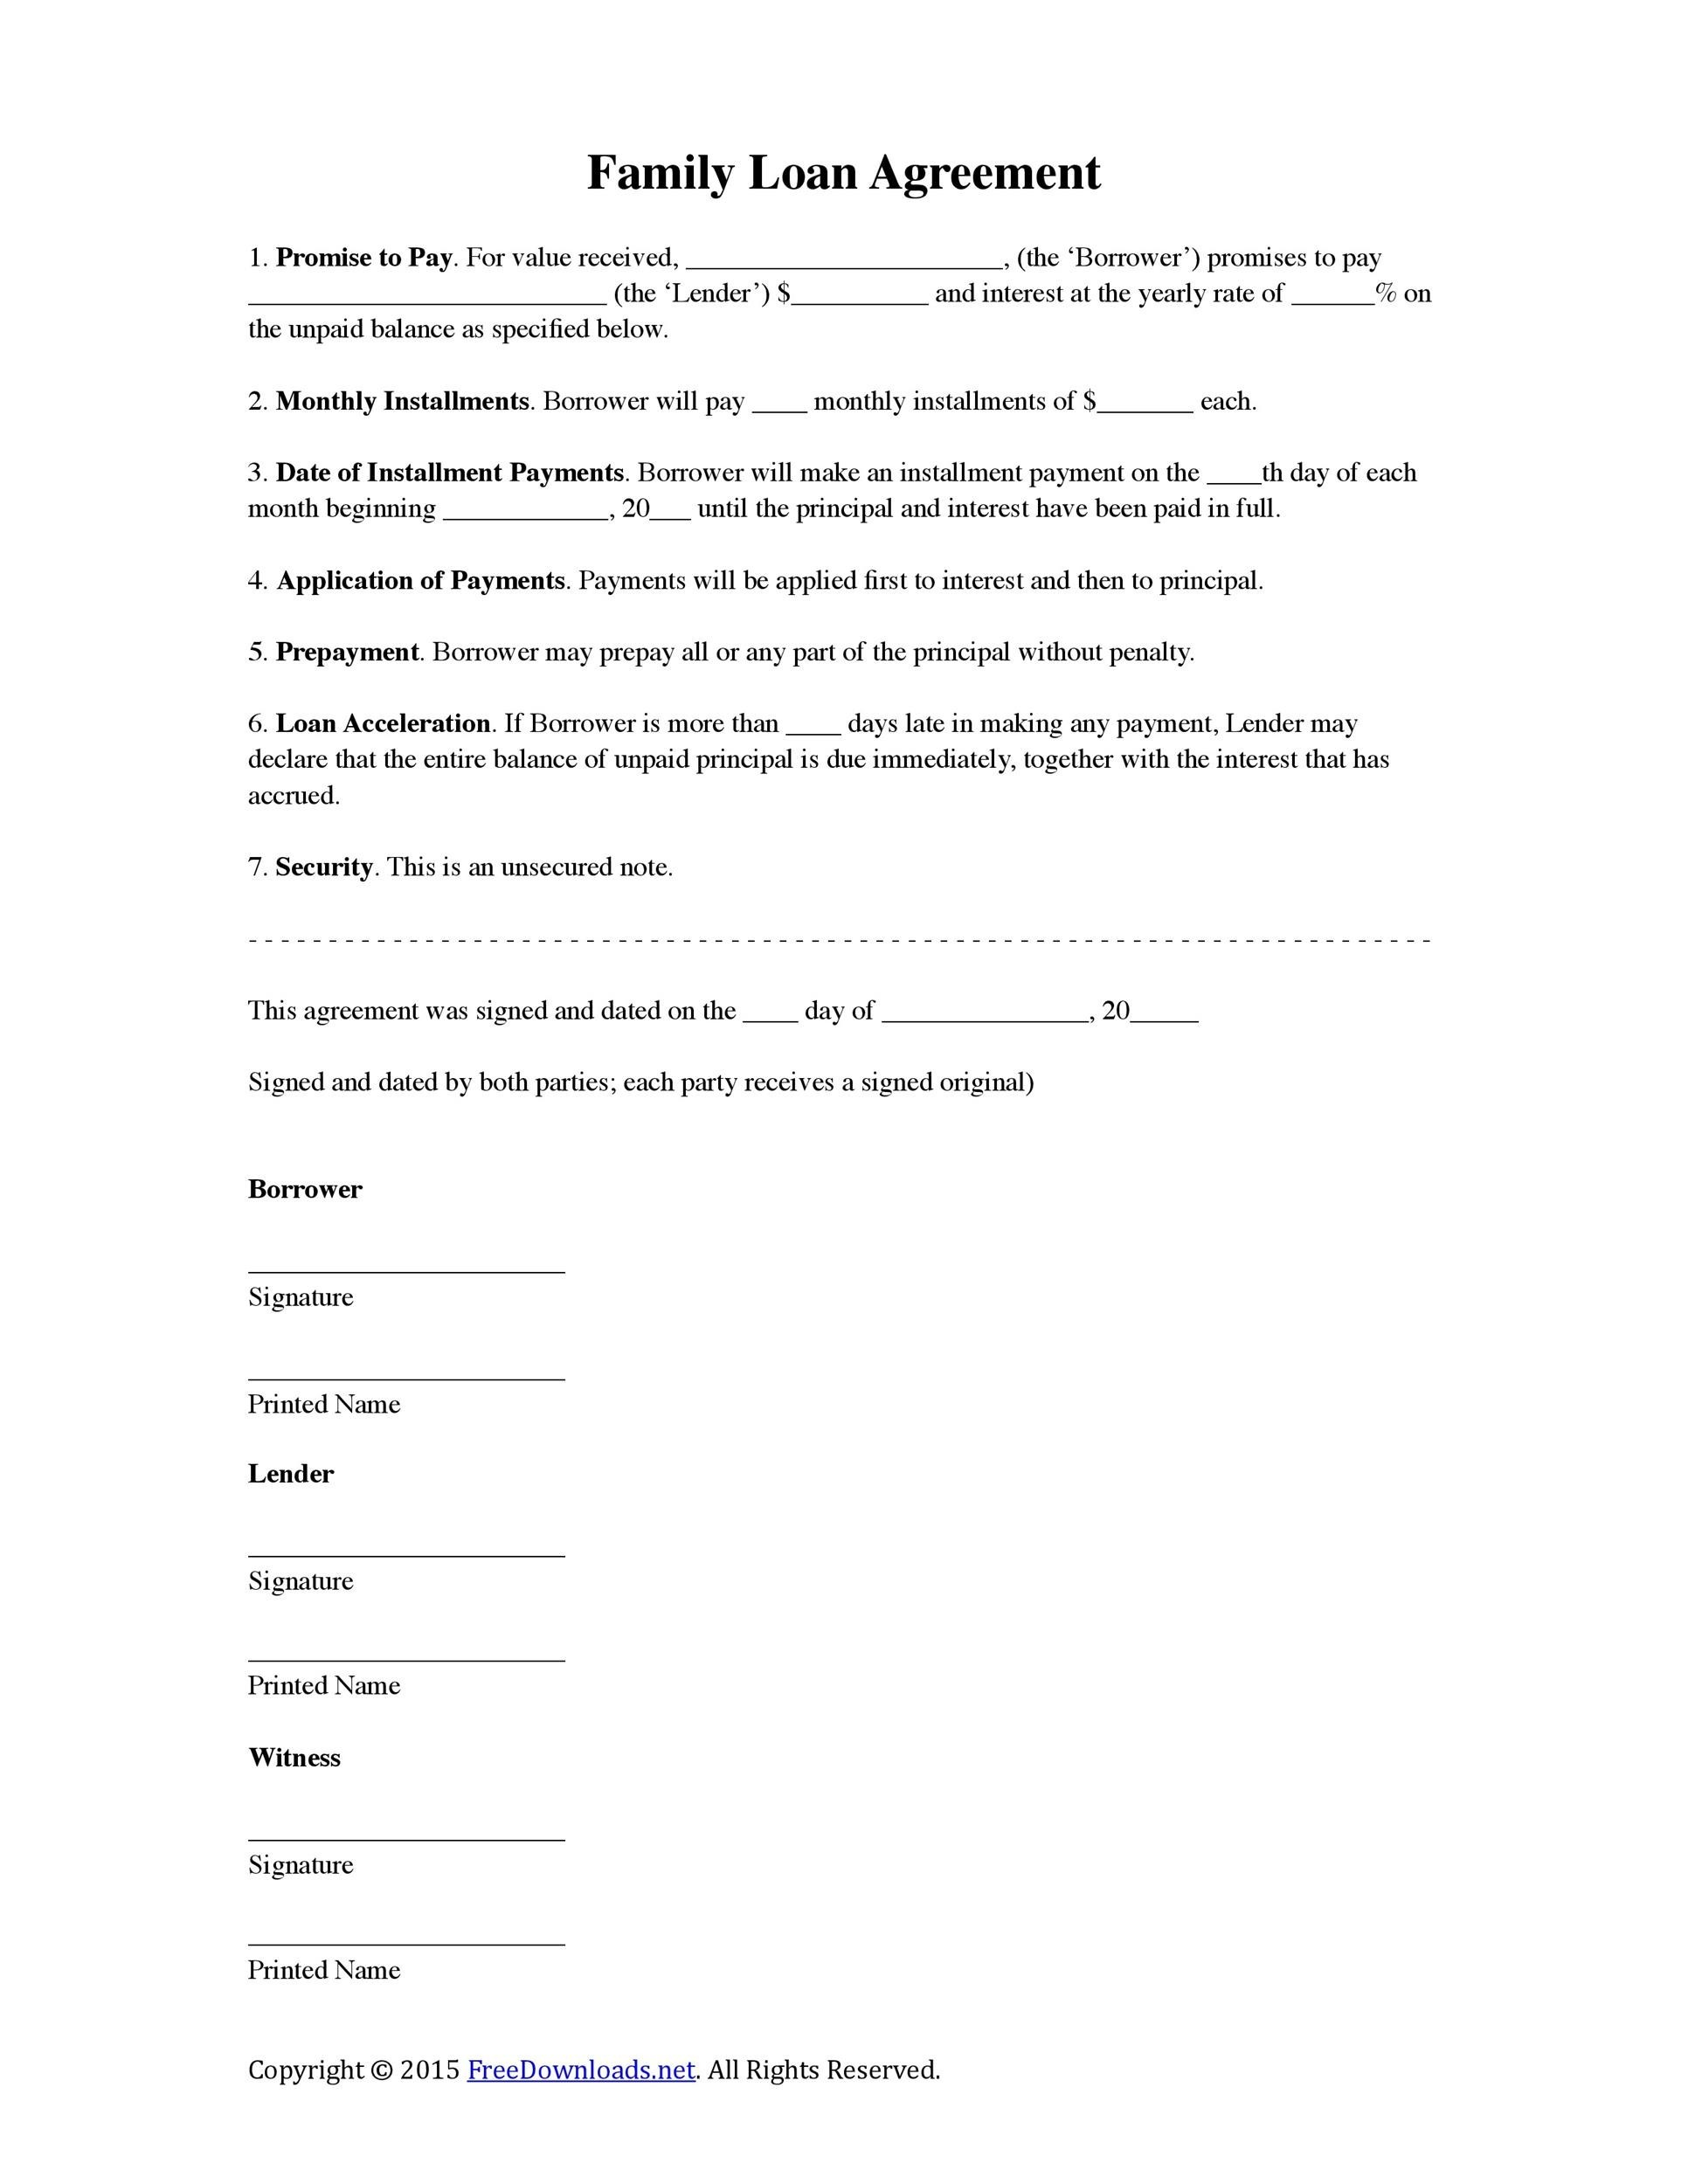 Free loan agreement template 37